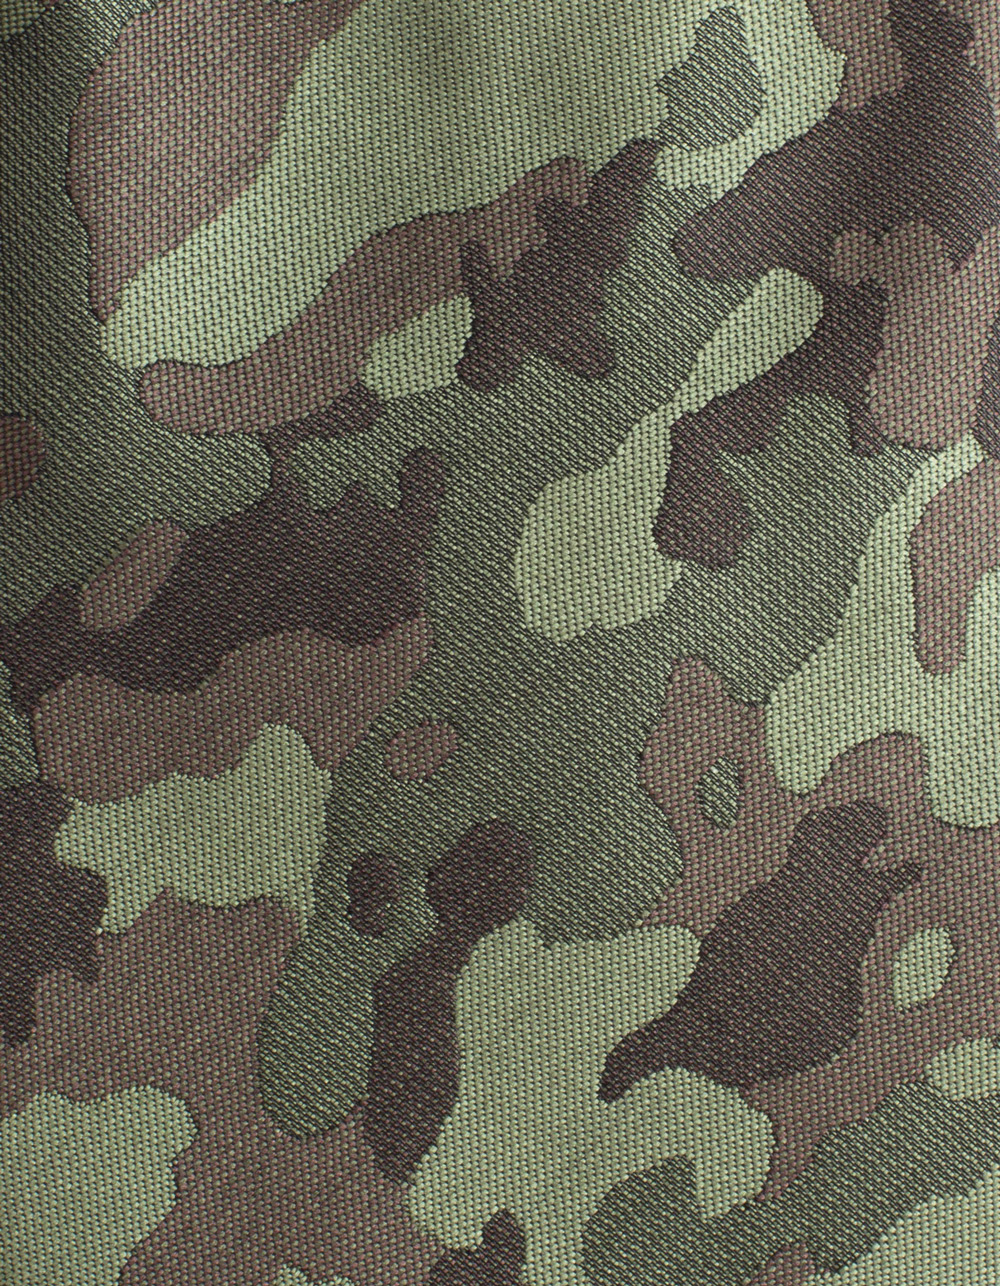 Camouflage Tie - Backside